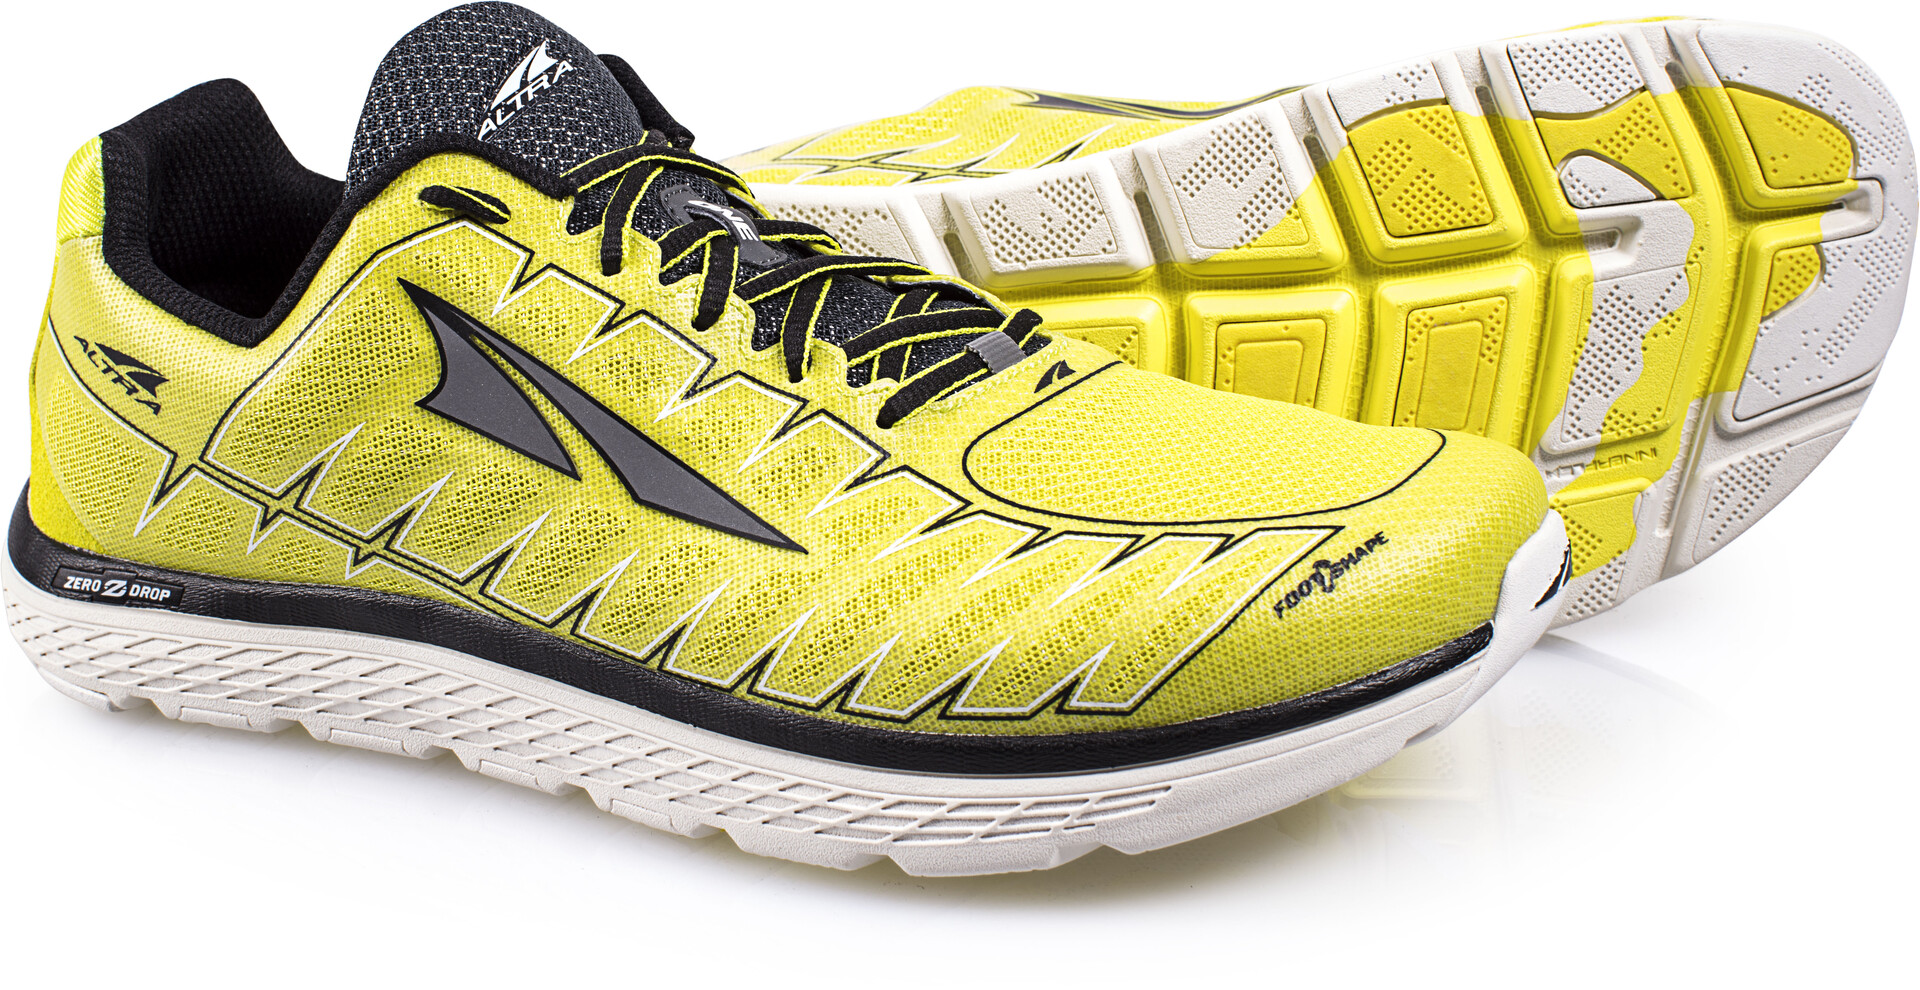 Running Jaune Boutique Altra V3 De Homme Vélos Chaussures One kNPXn0O8w